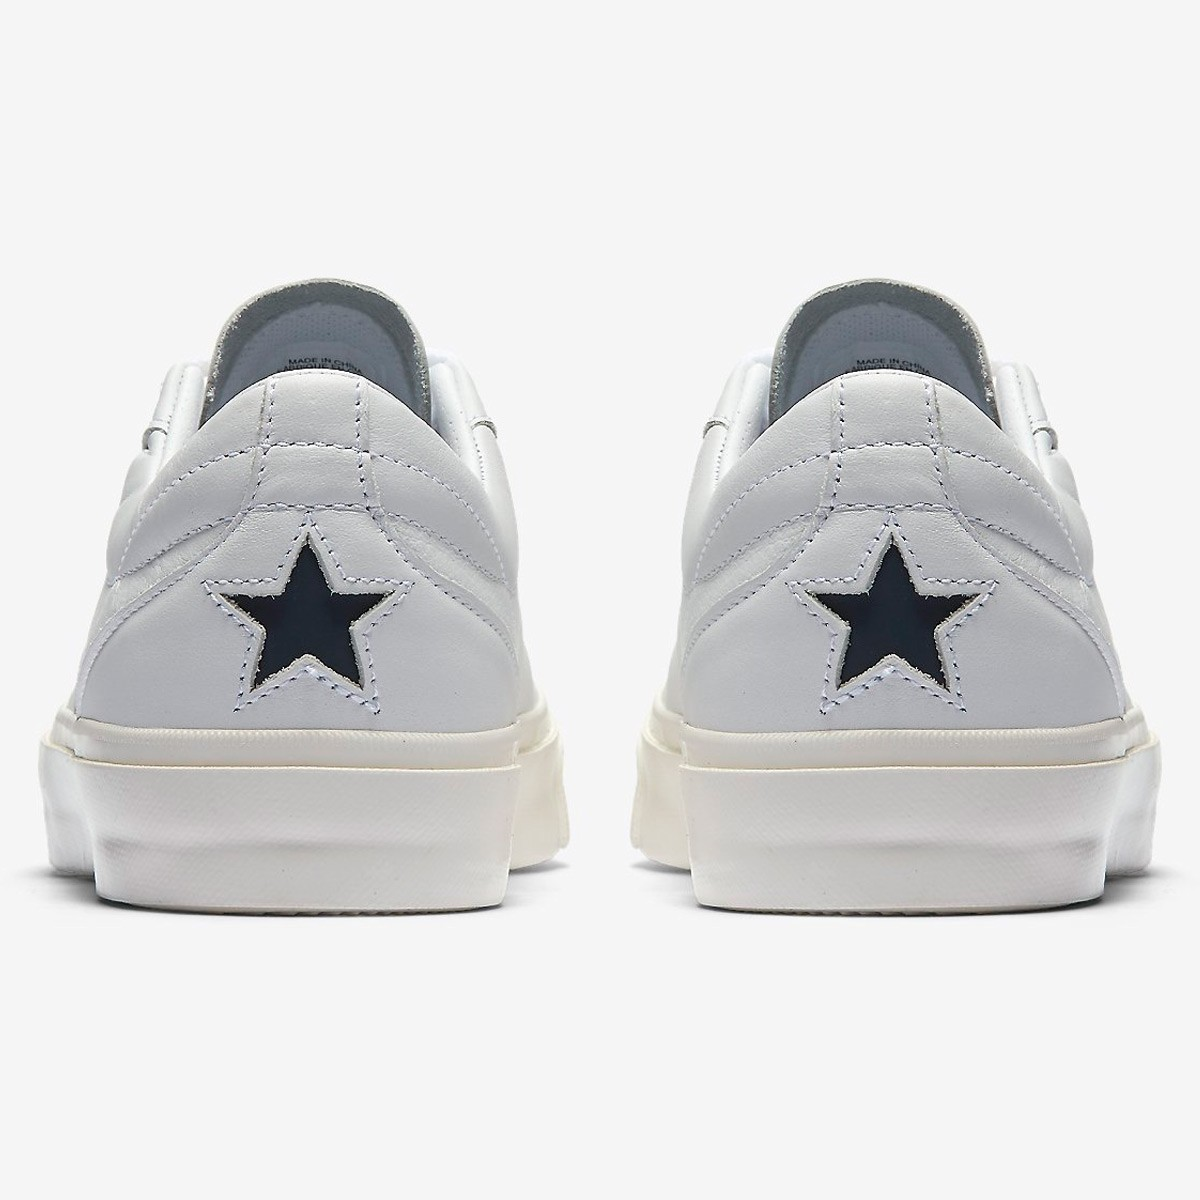 7a75b7a4d0a3 Converse Sage Elsesser One Star CC OX Premium Shoes - White White Obsidian -